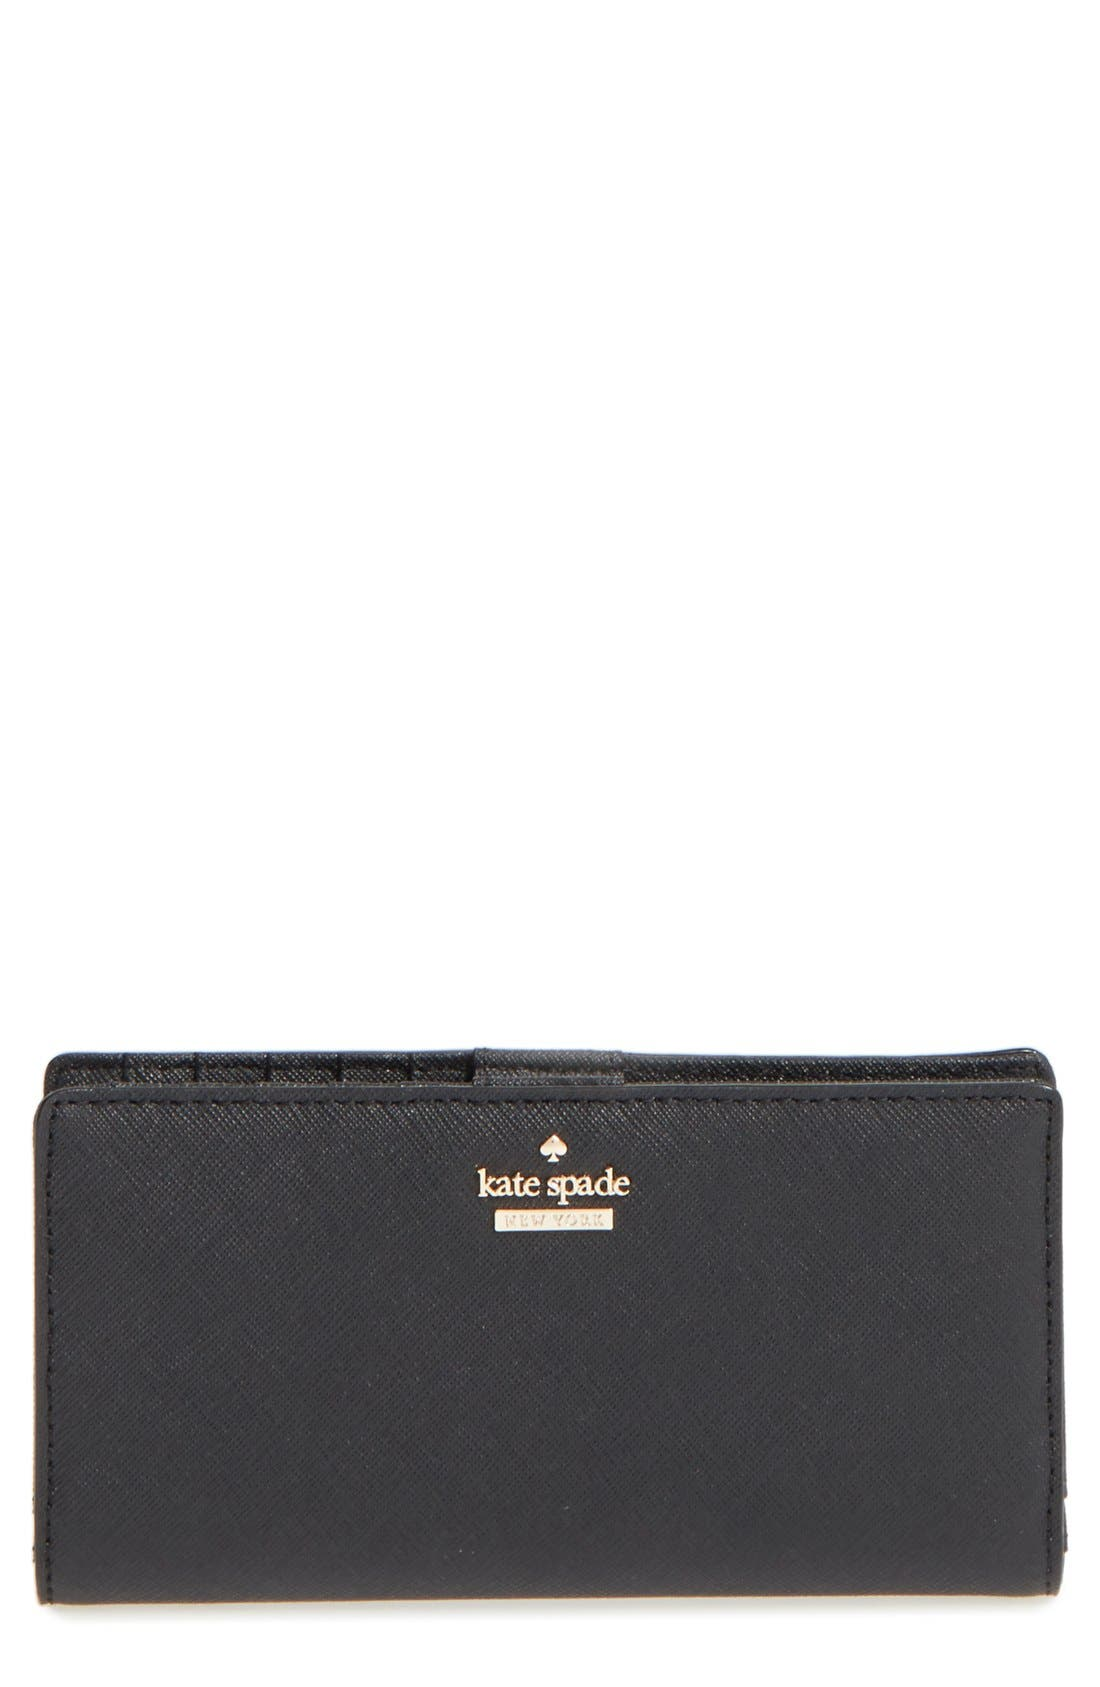 'cameron street - stacy' textured leather wallet,                         Main,                         color, Black